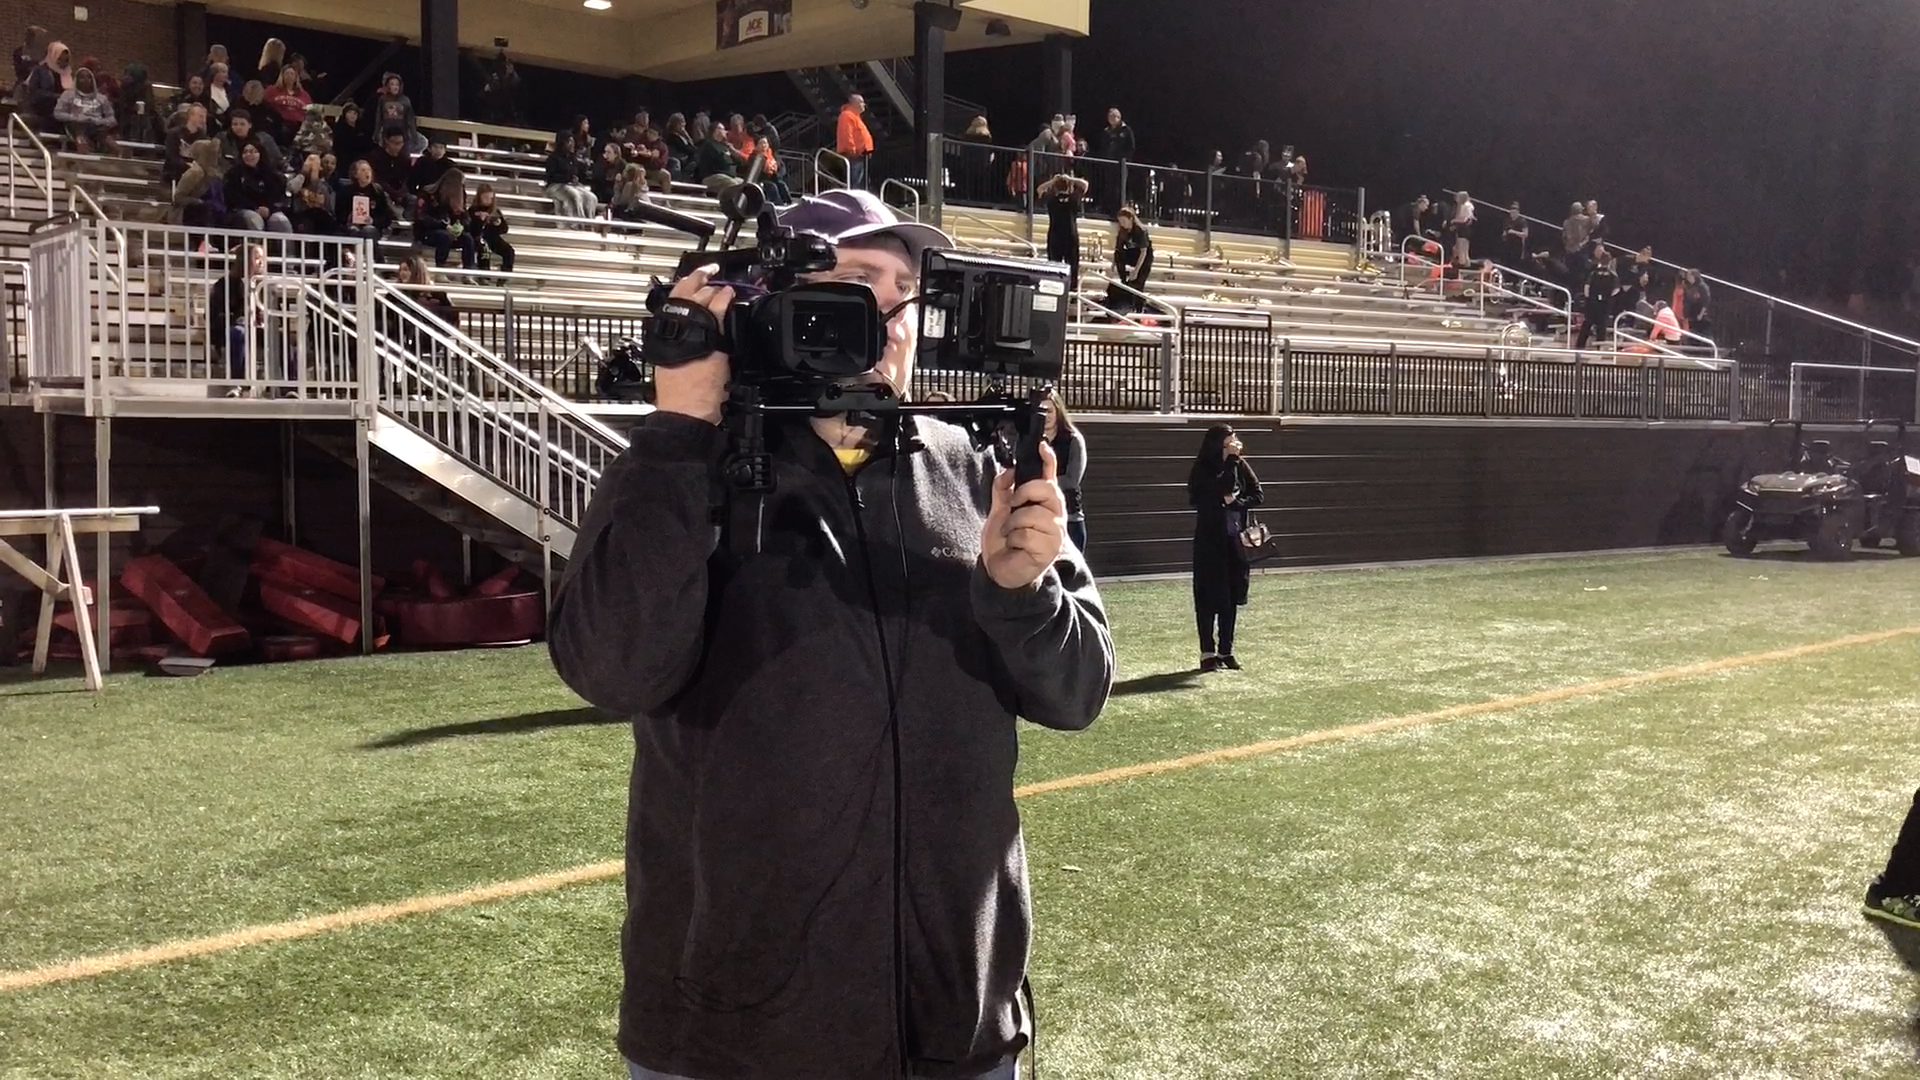 Nick Dalhoff working wireless sideline camera at a Marshall HS football game